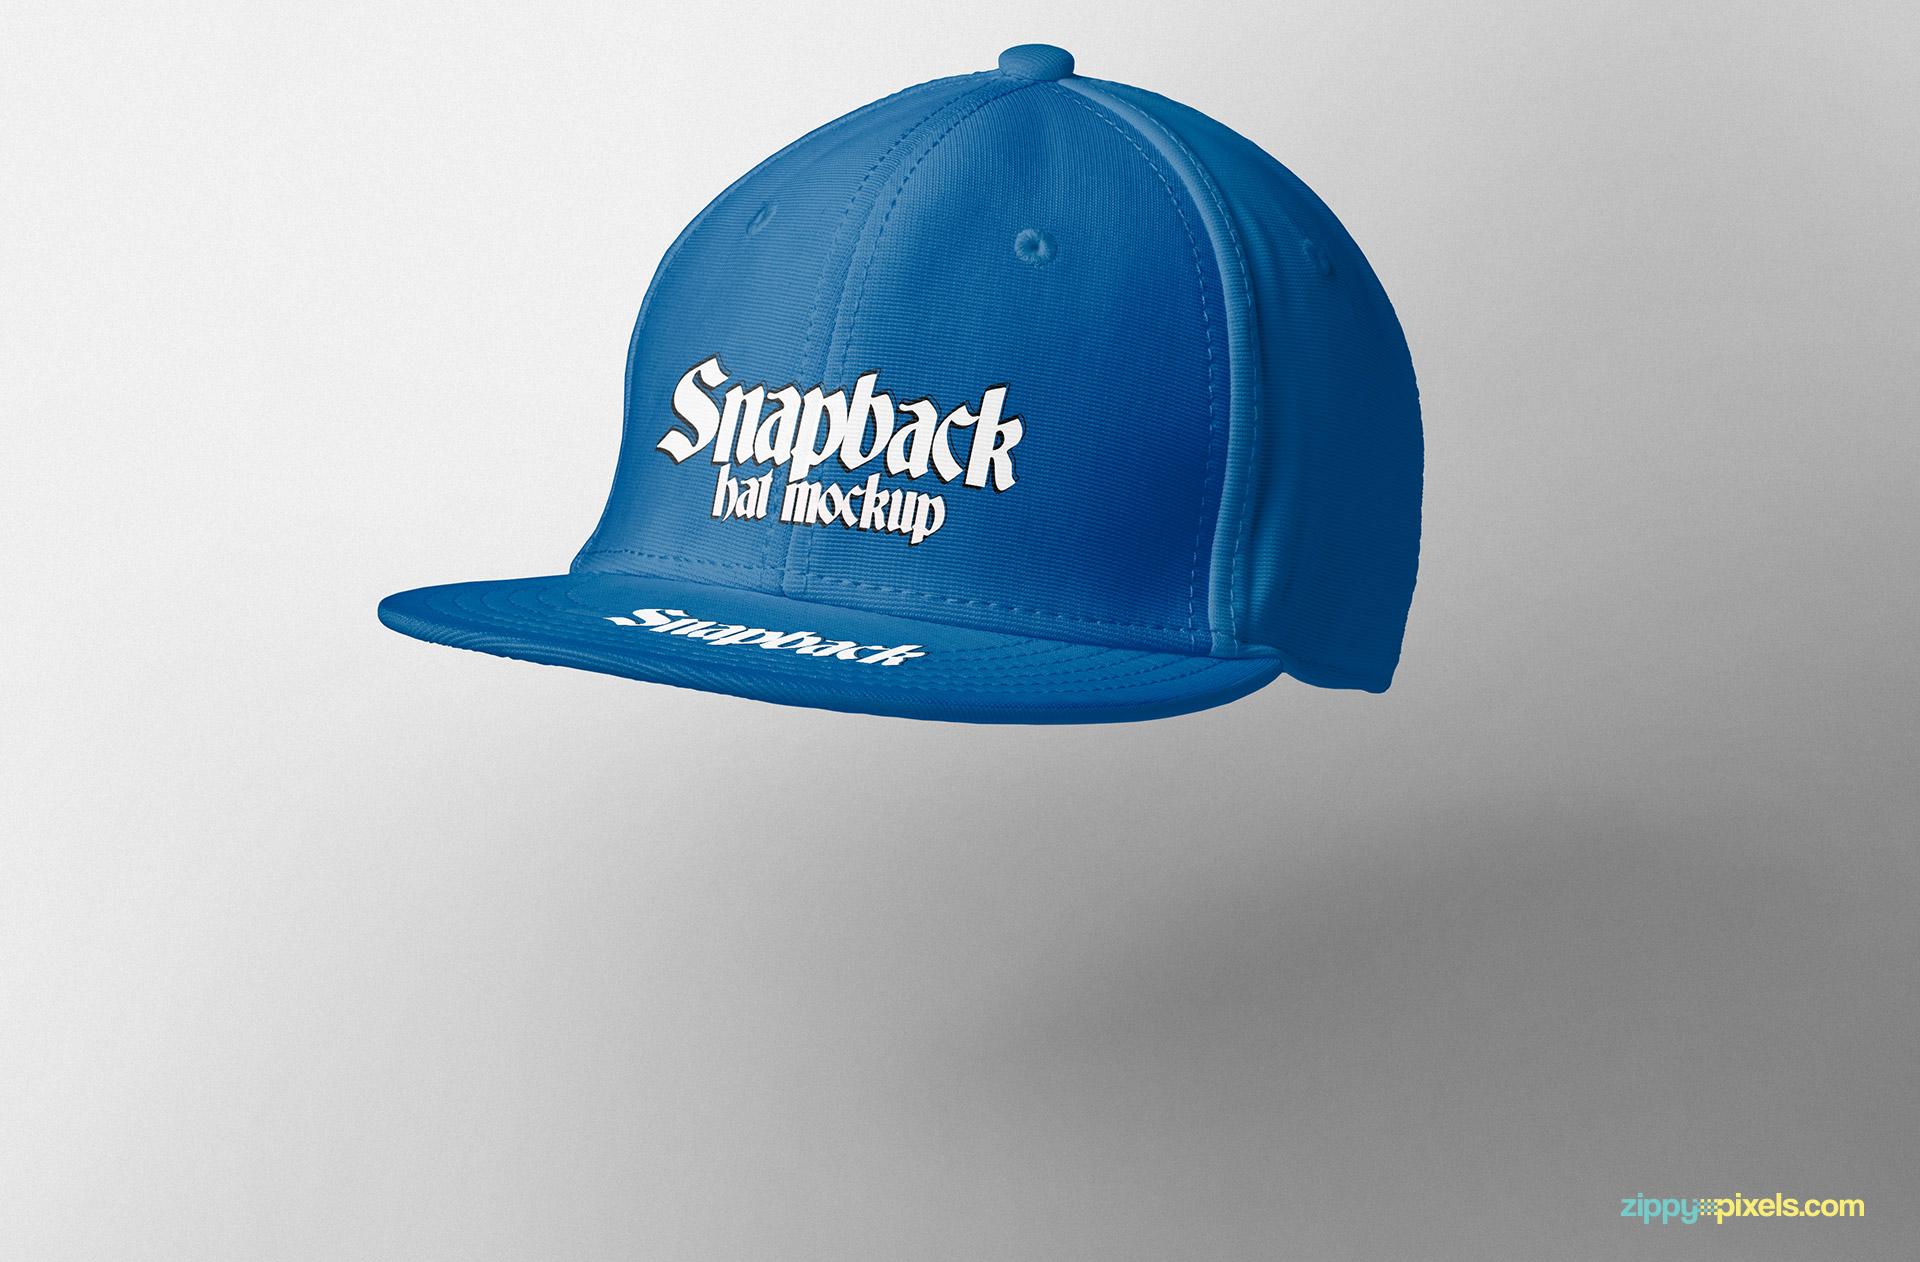 Move this snapback hat mockup anywhere on the scene.